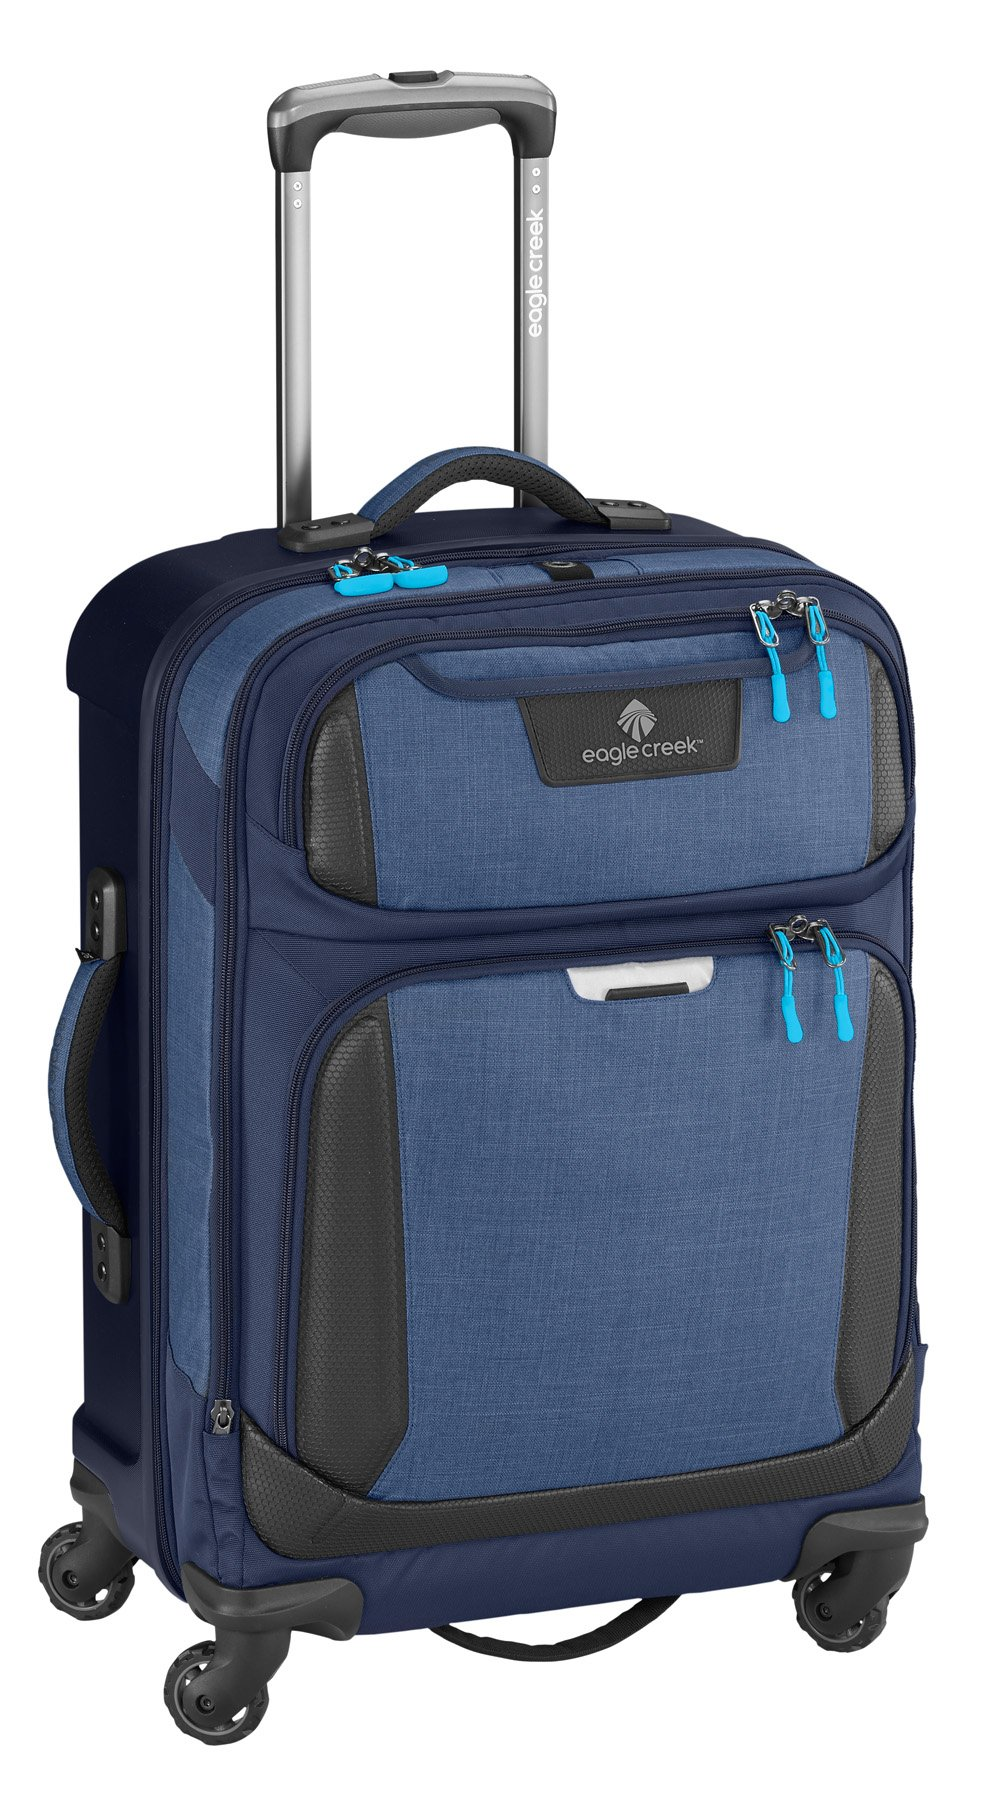 Eagle Creek Tarmac Awd 26 Inch Luggage, Slate Blue by Eagle Creek